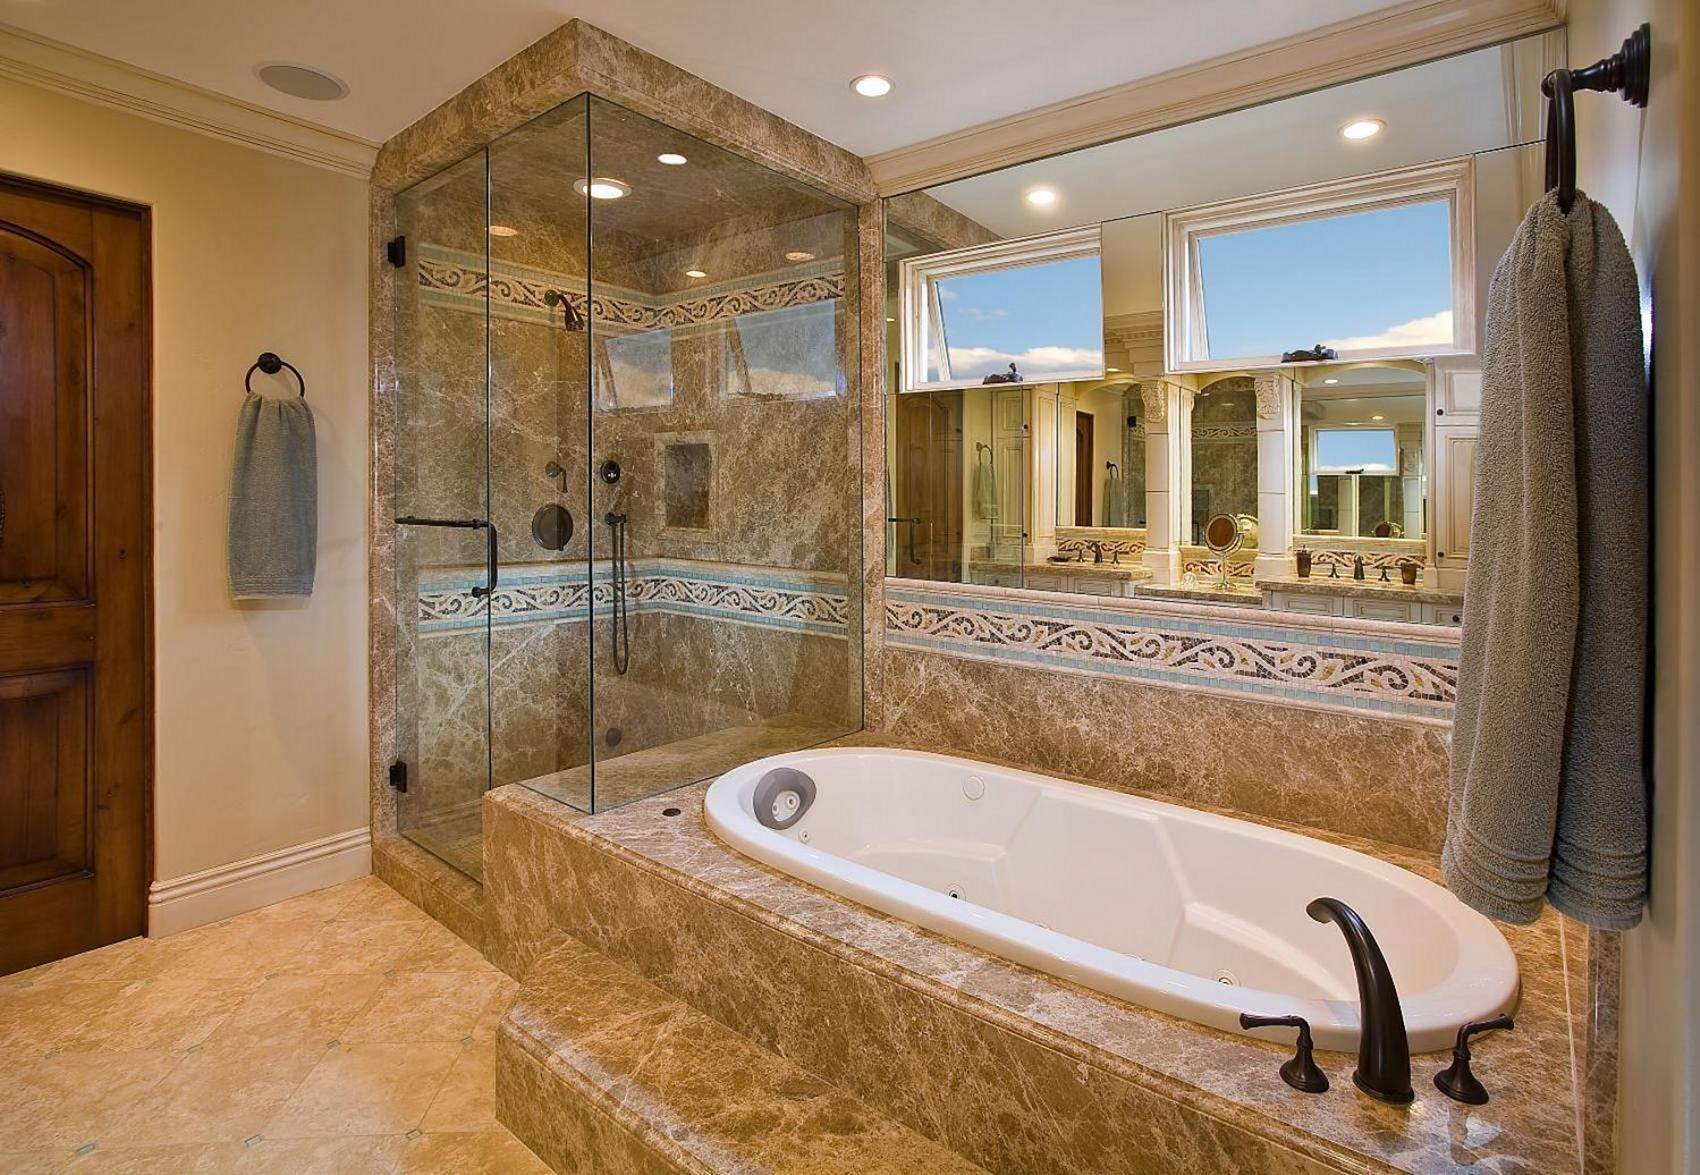 22 Marvelous Master Bathroom Remodel Ideas For Your Big Home With